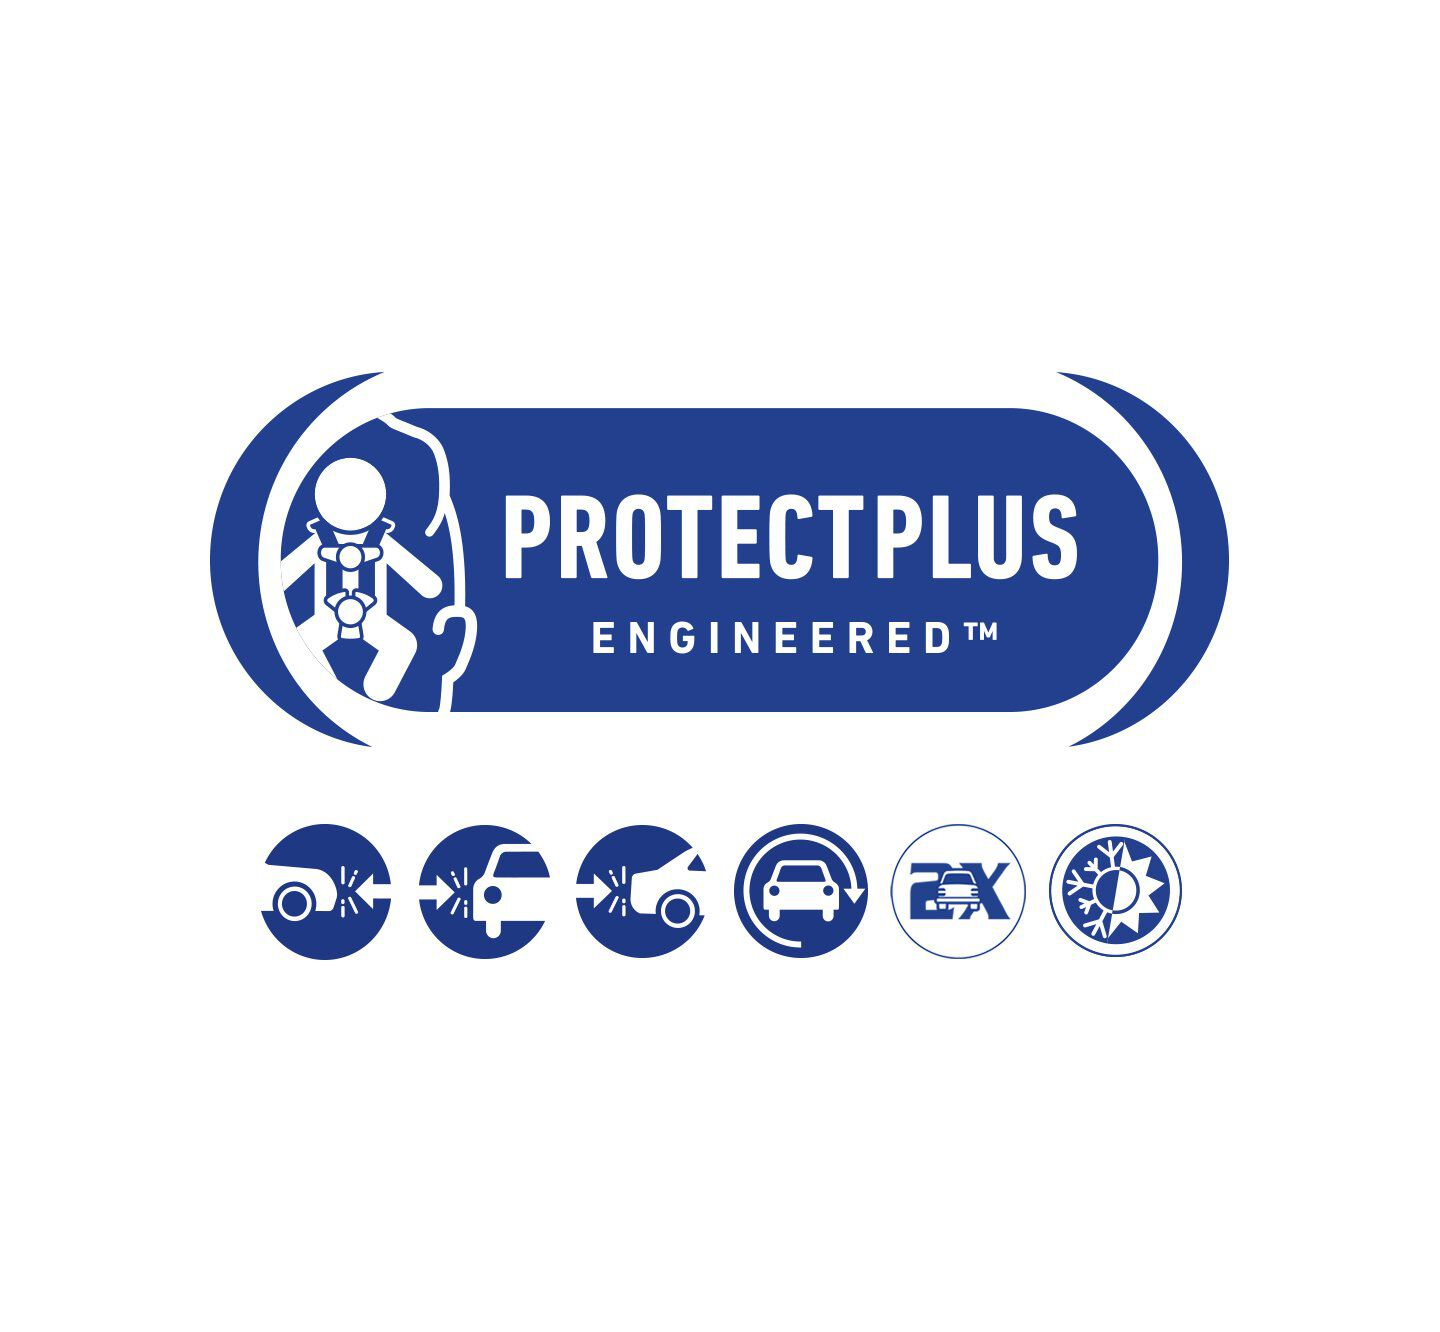 protect plus engineered logos